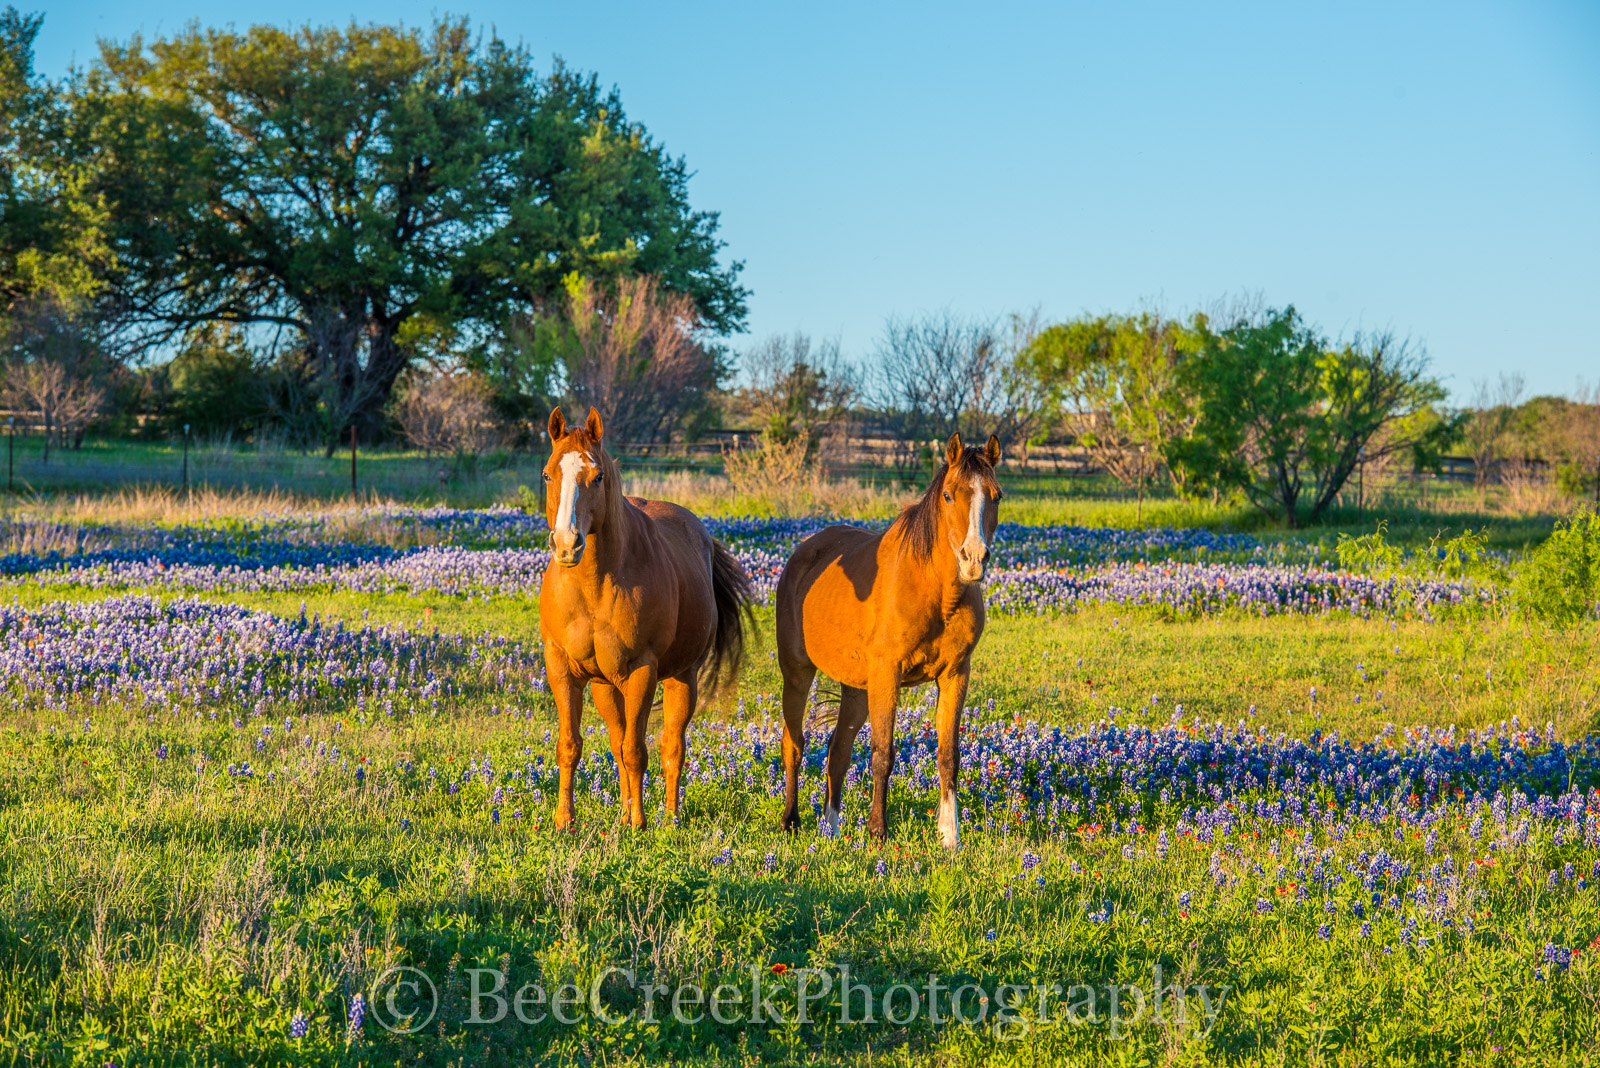 bluebonnets, blue bonnets, wildflowers, horses, landscape, field, pasture, Texas, Texas hill country,, , photo